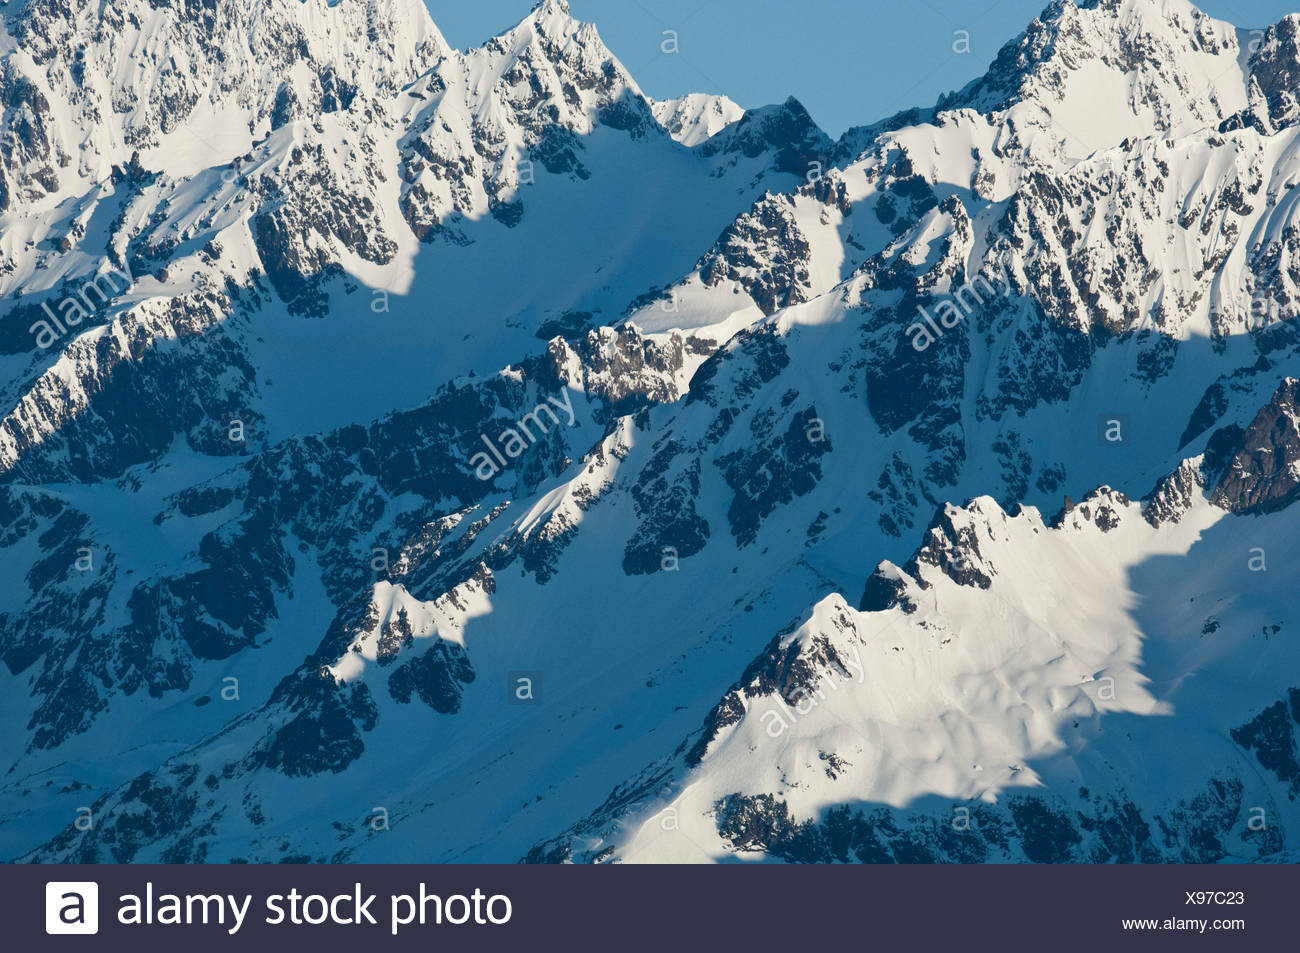 The snowcapped Chugach Mountains in Alaska. - Stock Image